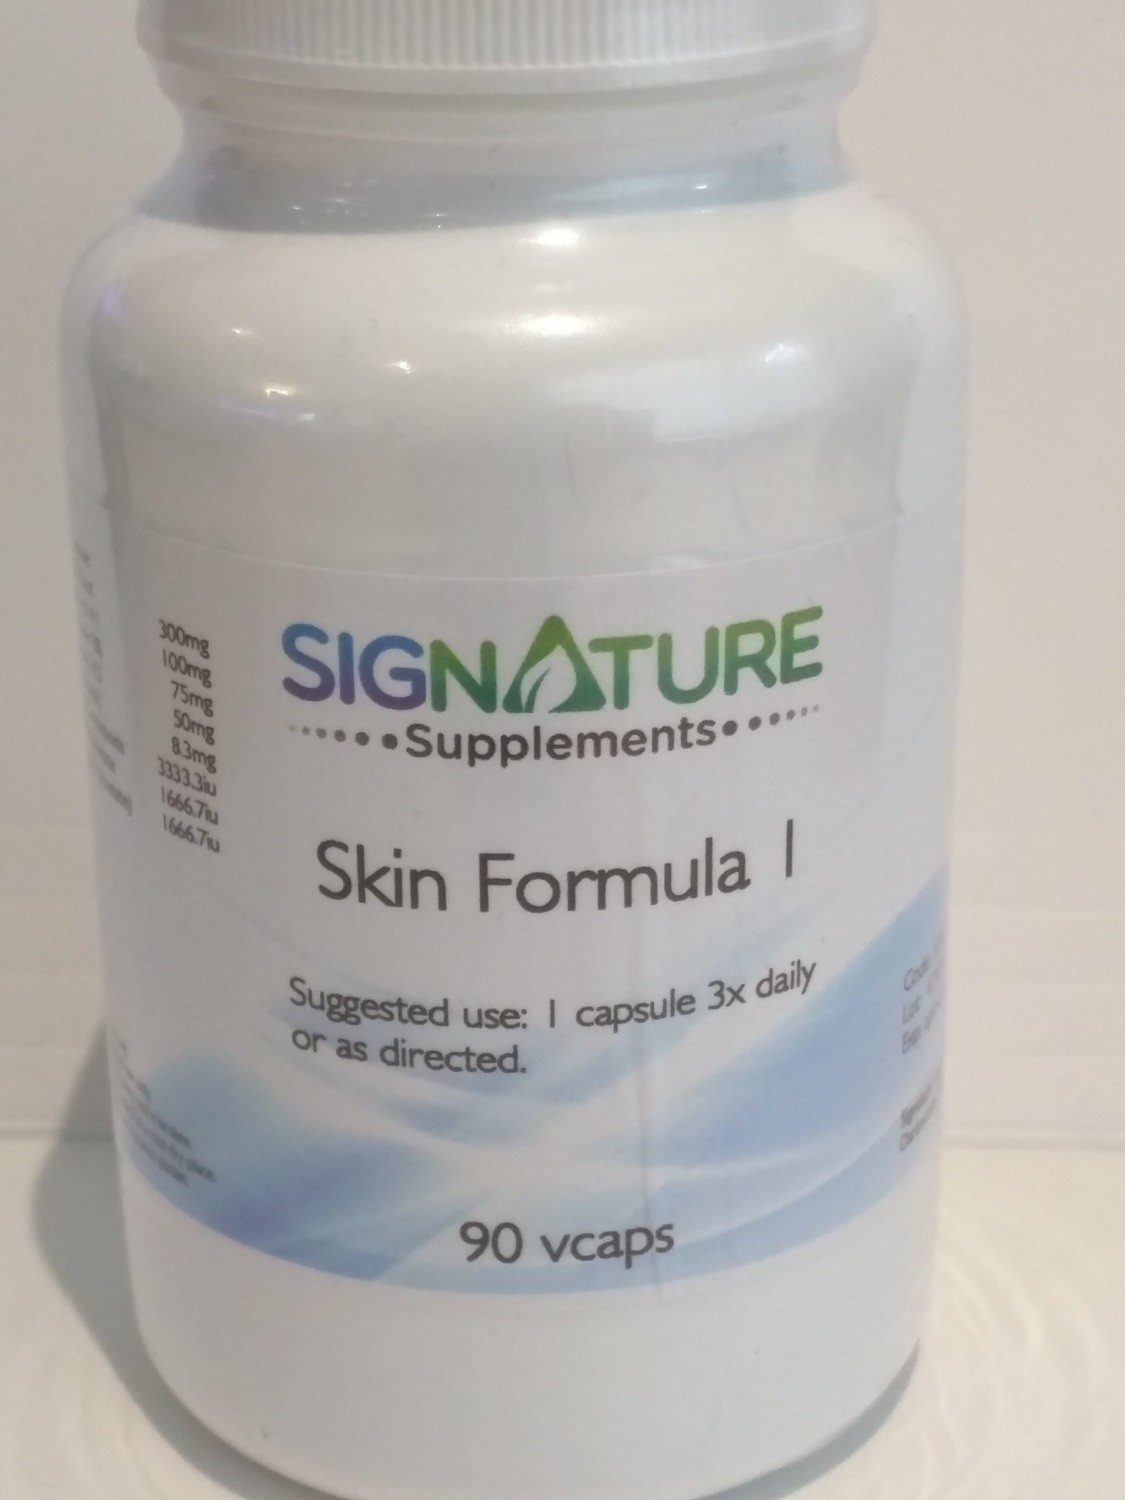 Skin Formula 1 (Acne) by Signature Supplements